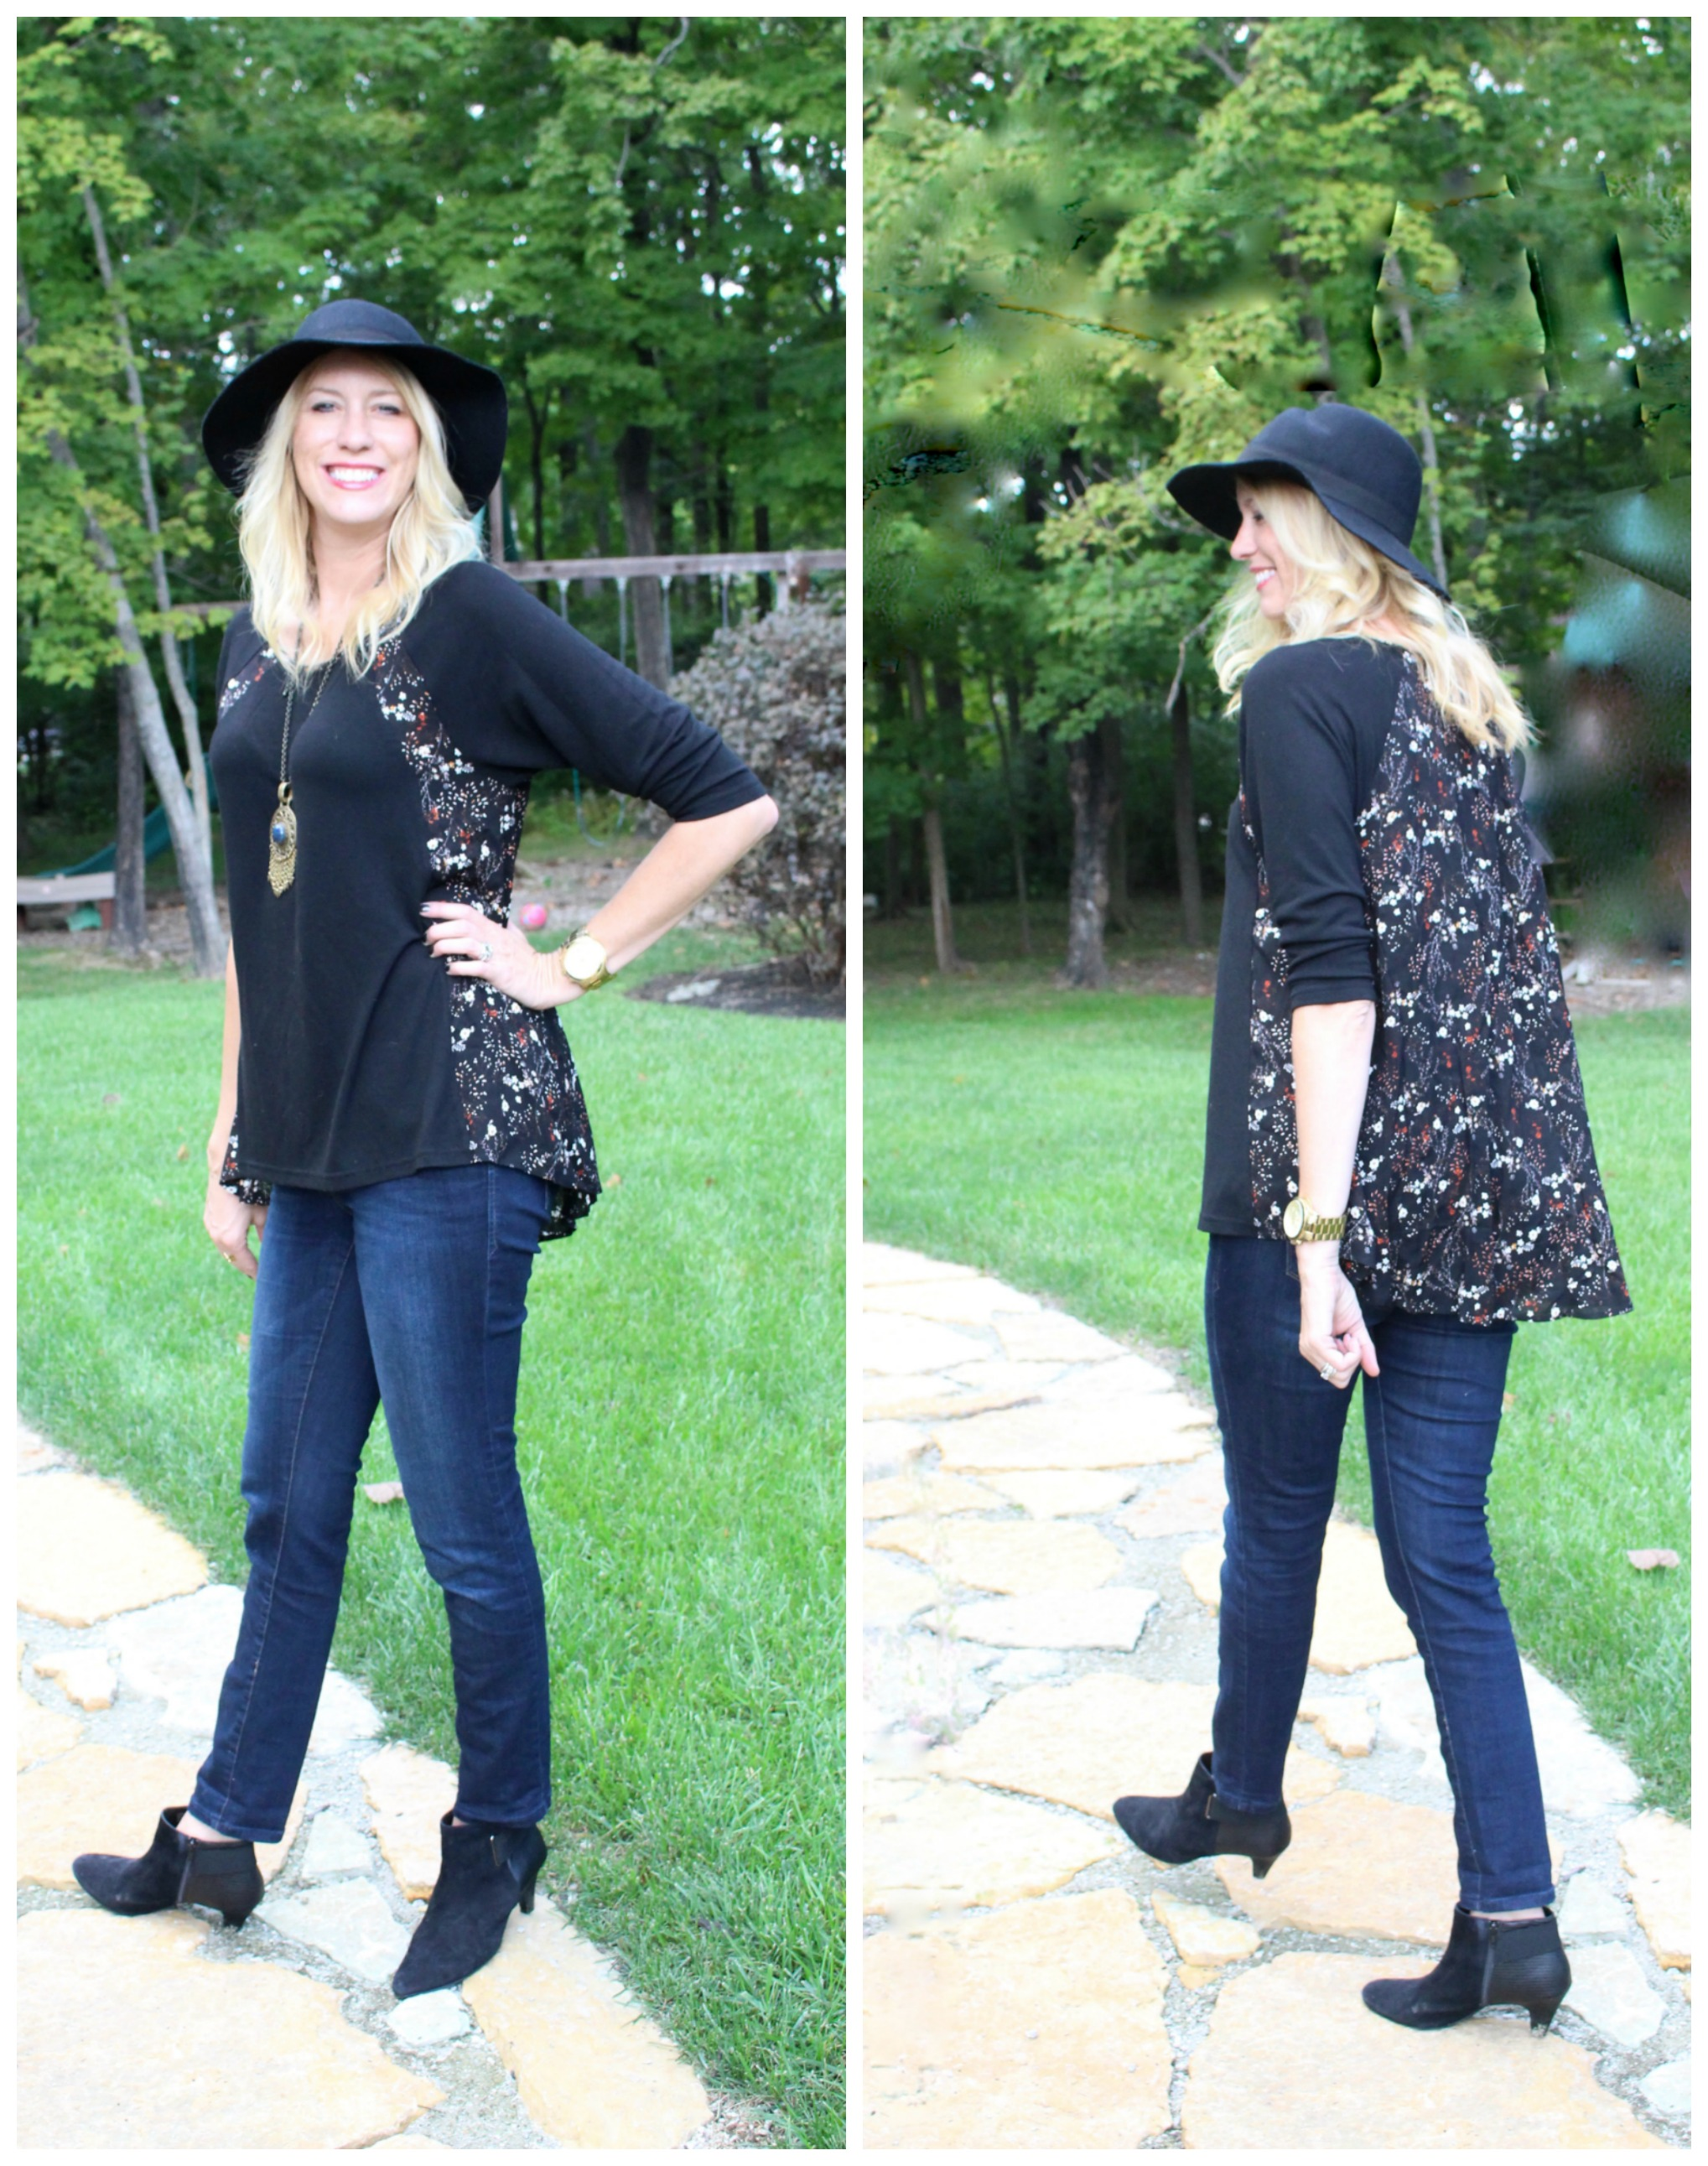 glamour-farms-black-top-fashion- women's fashion- fall wardrobe- clothing- floral top